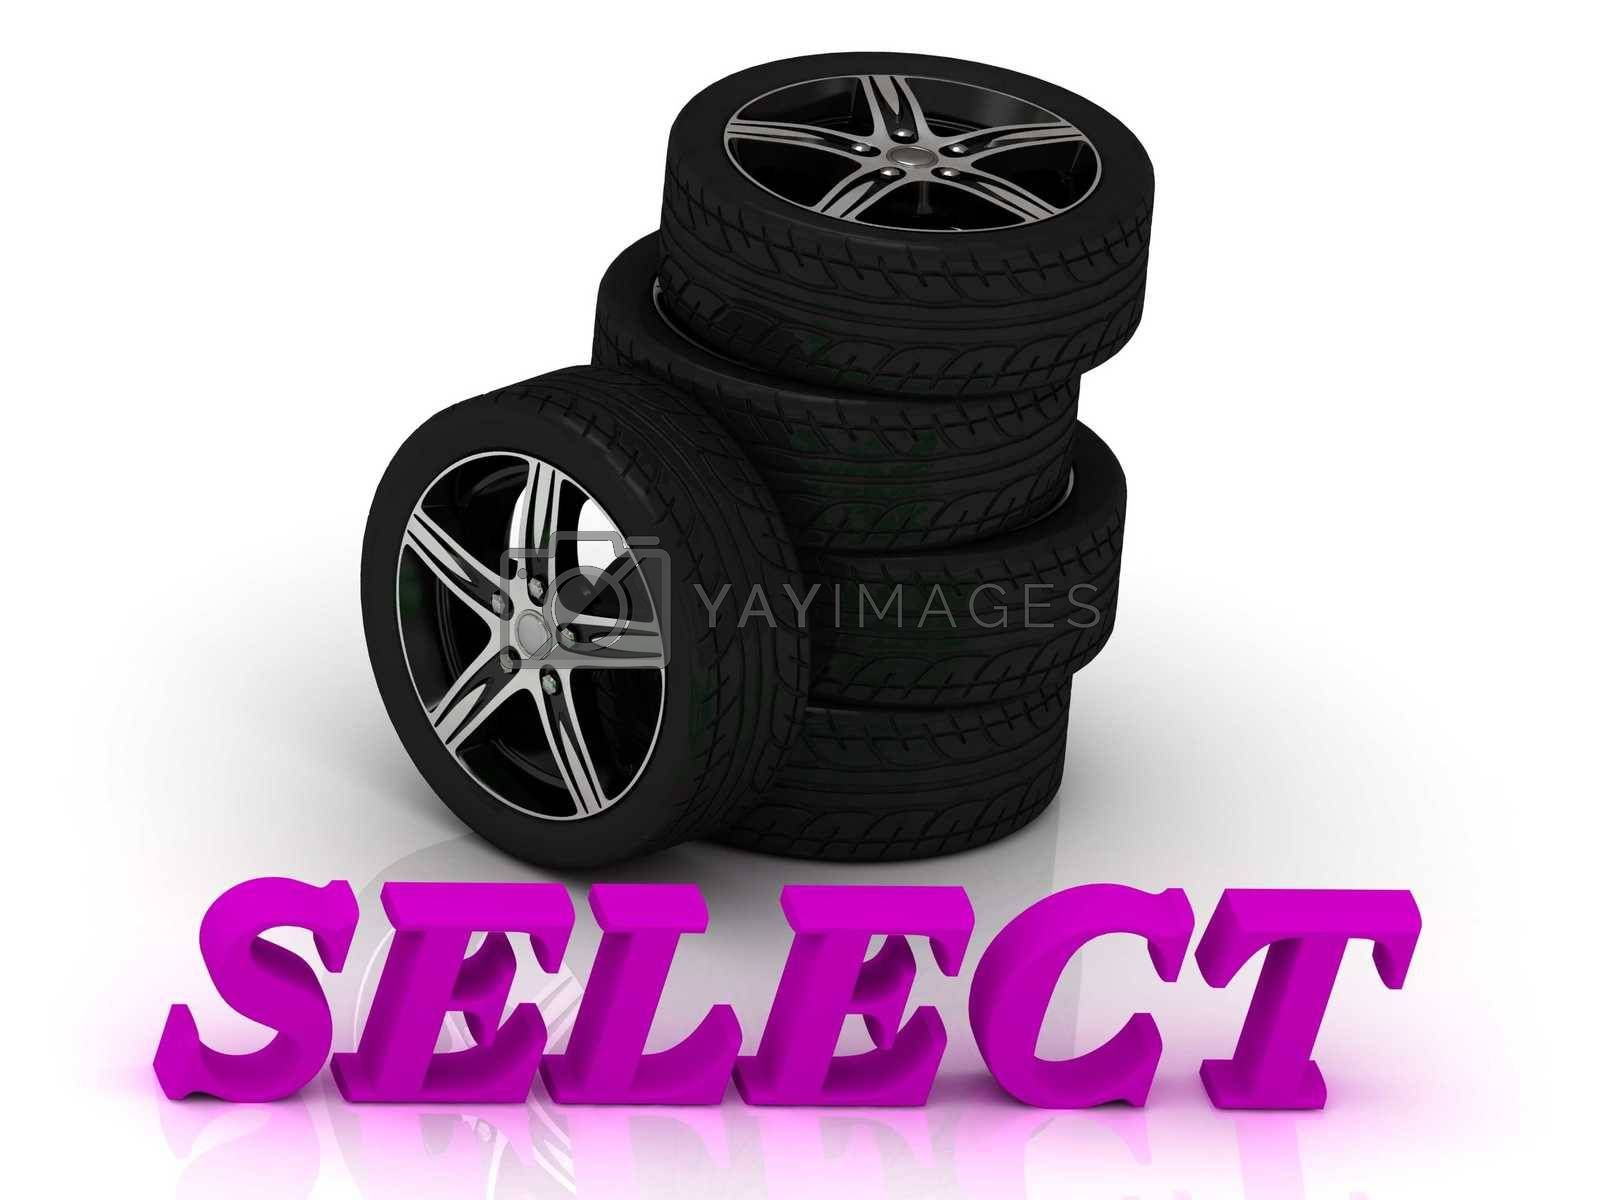 SELECT- bright letters and rims mashine black wheels on a white background